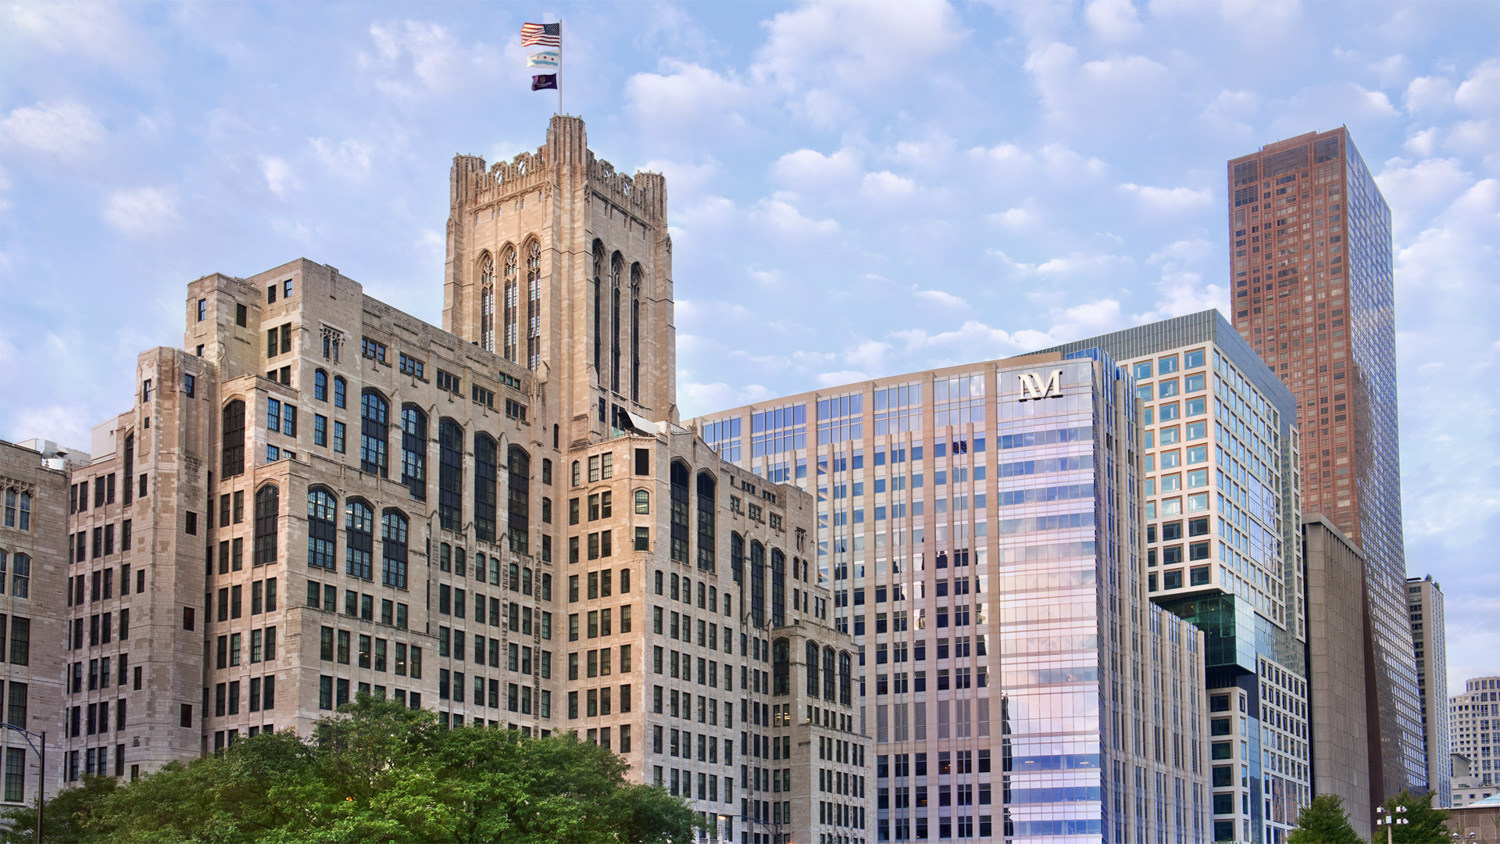 Northwestern Memorial Hospital is recognized among the top 10 hospitals in the country and remains No. 1 in Chicago and Illinois